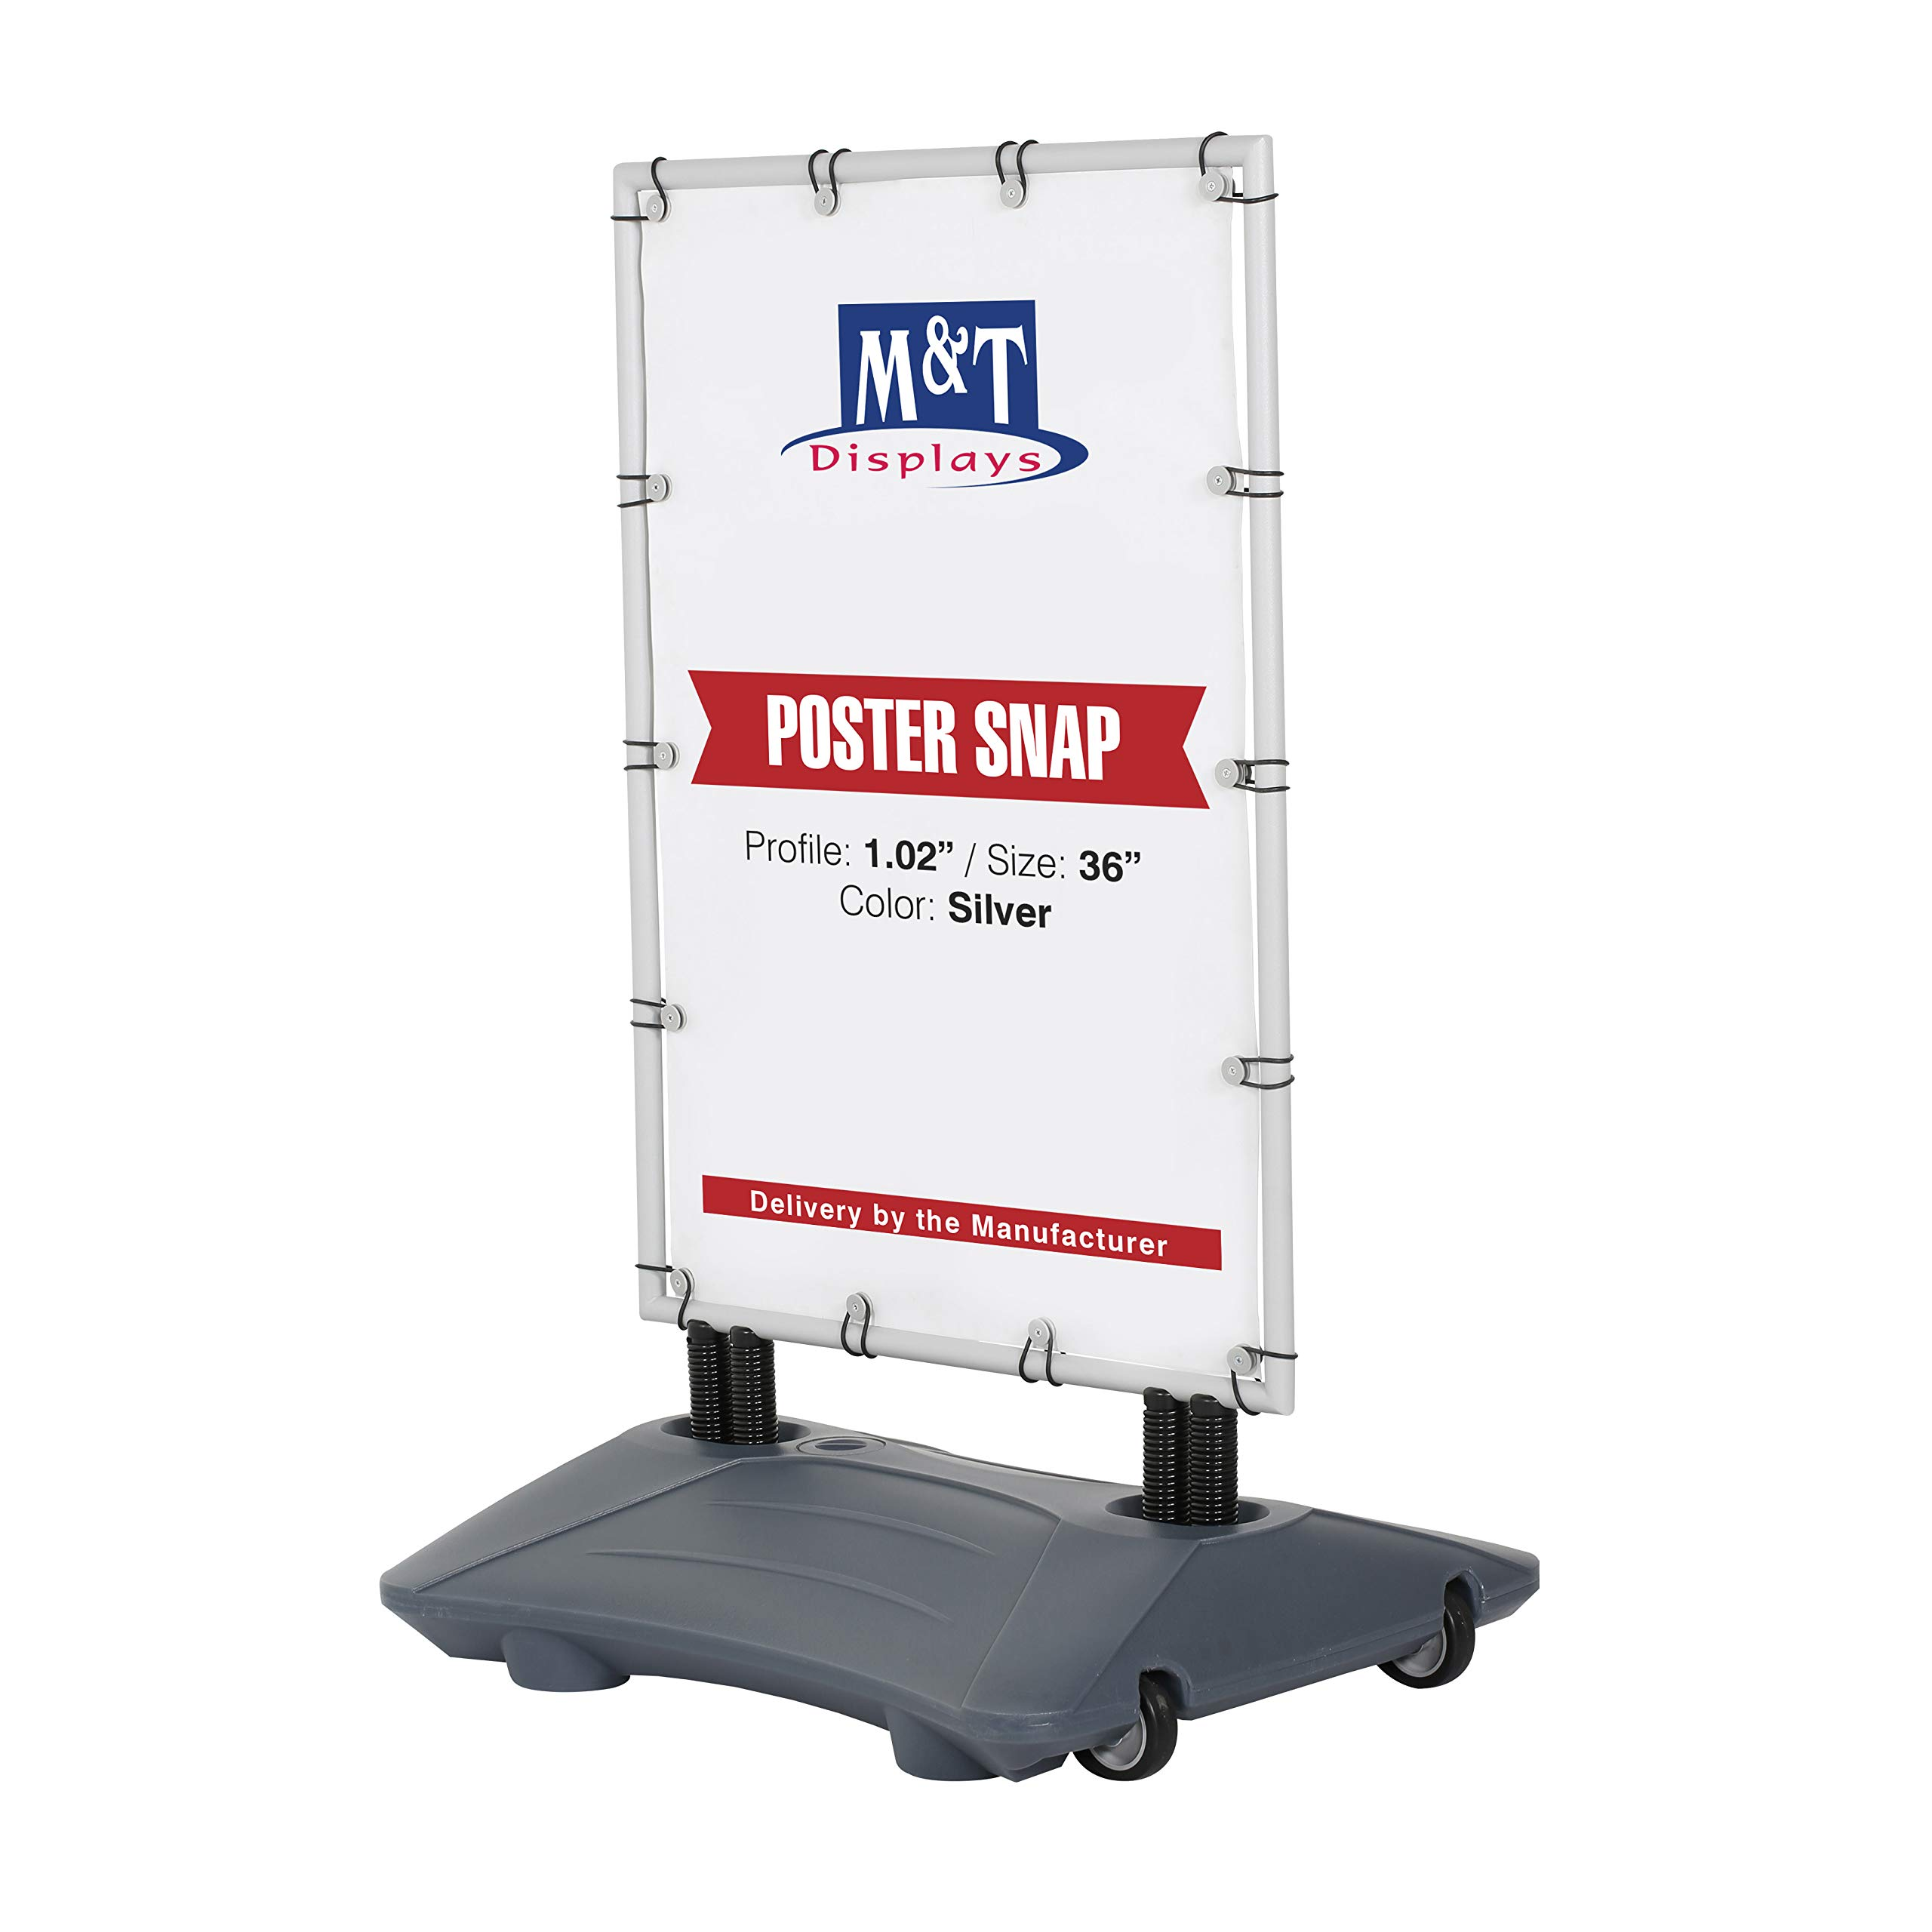 Outside Advertising Display Banner Wind Pro, 24x36 Poster Size, Silver Frame, Grey Water Base, Wind Resistant, Durable